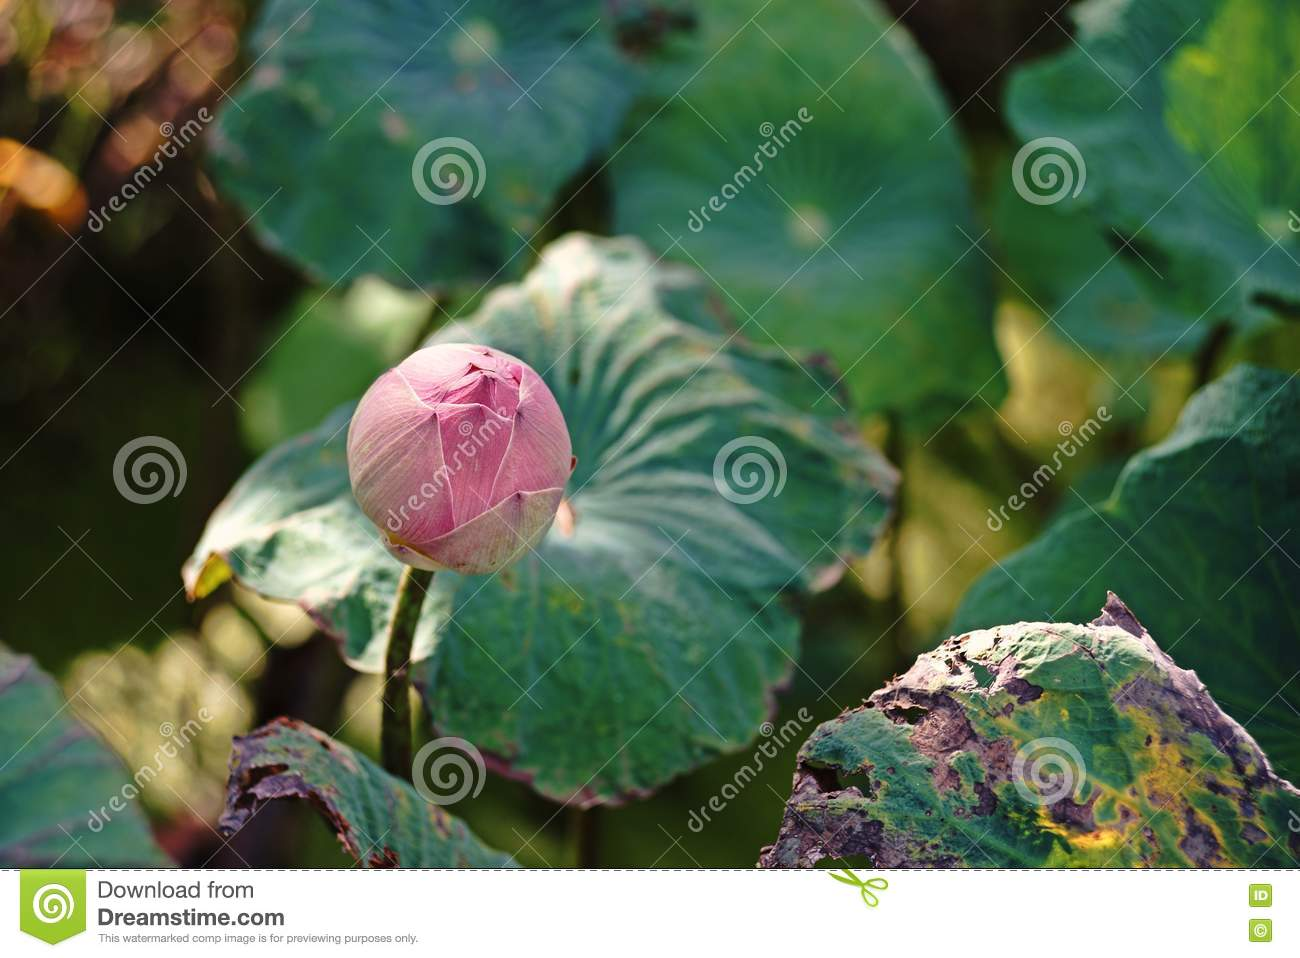 Lotusflower related to religion and nation stock image image of pink lotusbeautiful flowere national flower of india vietnam and bangladesh its native tropical flower of asia izmirmasajfo